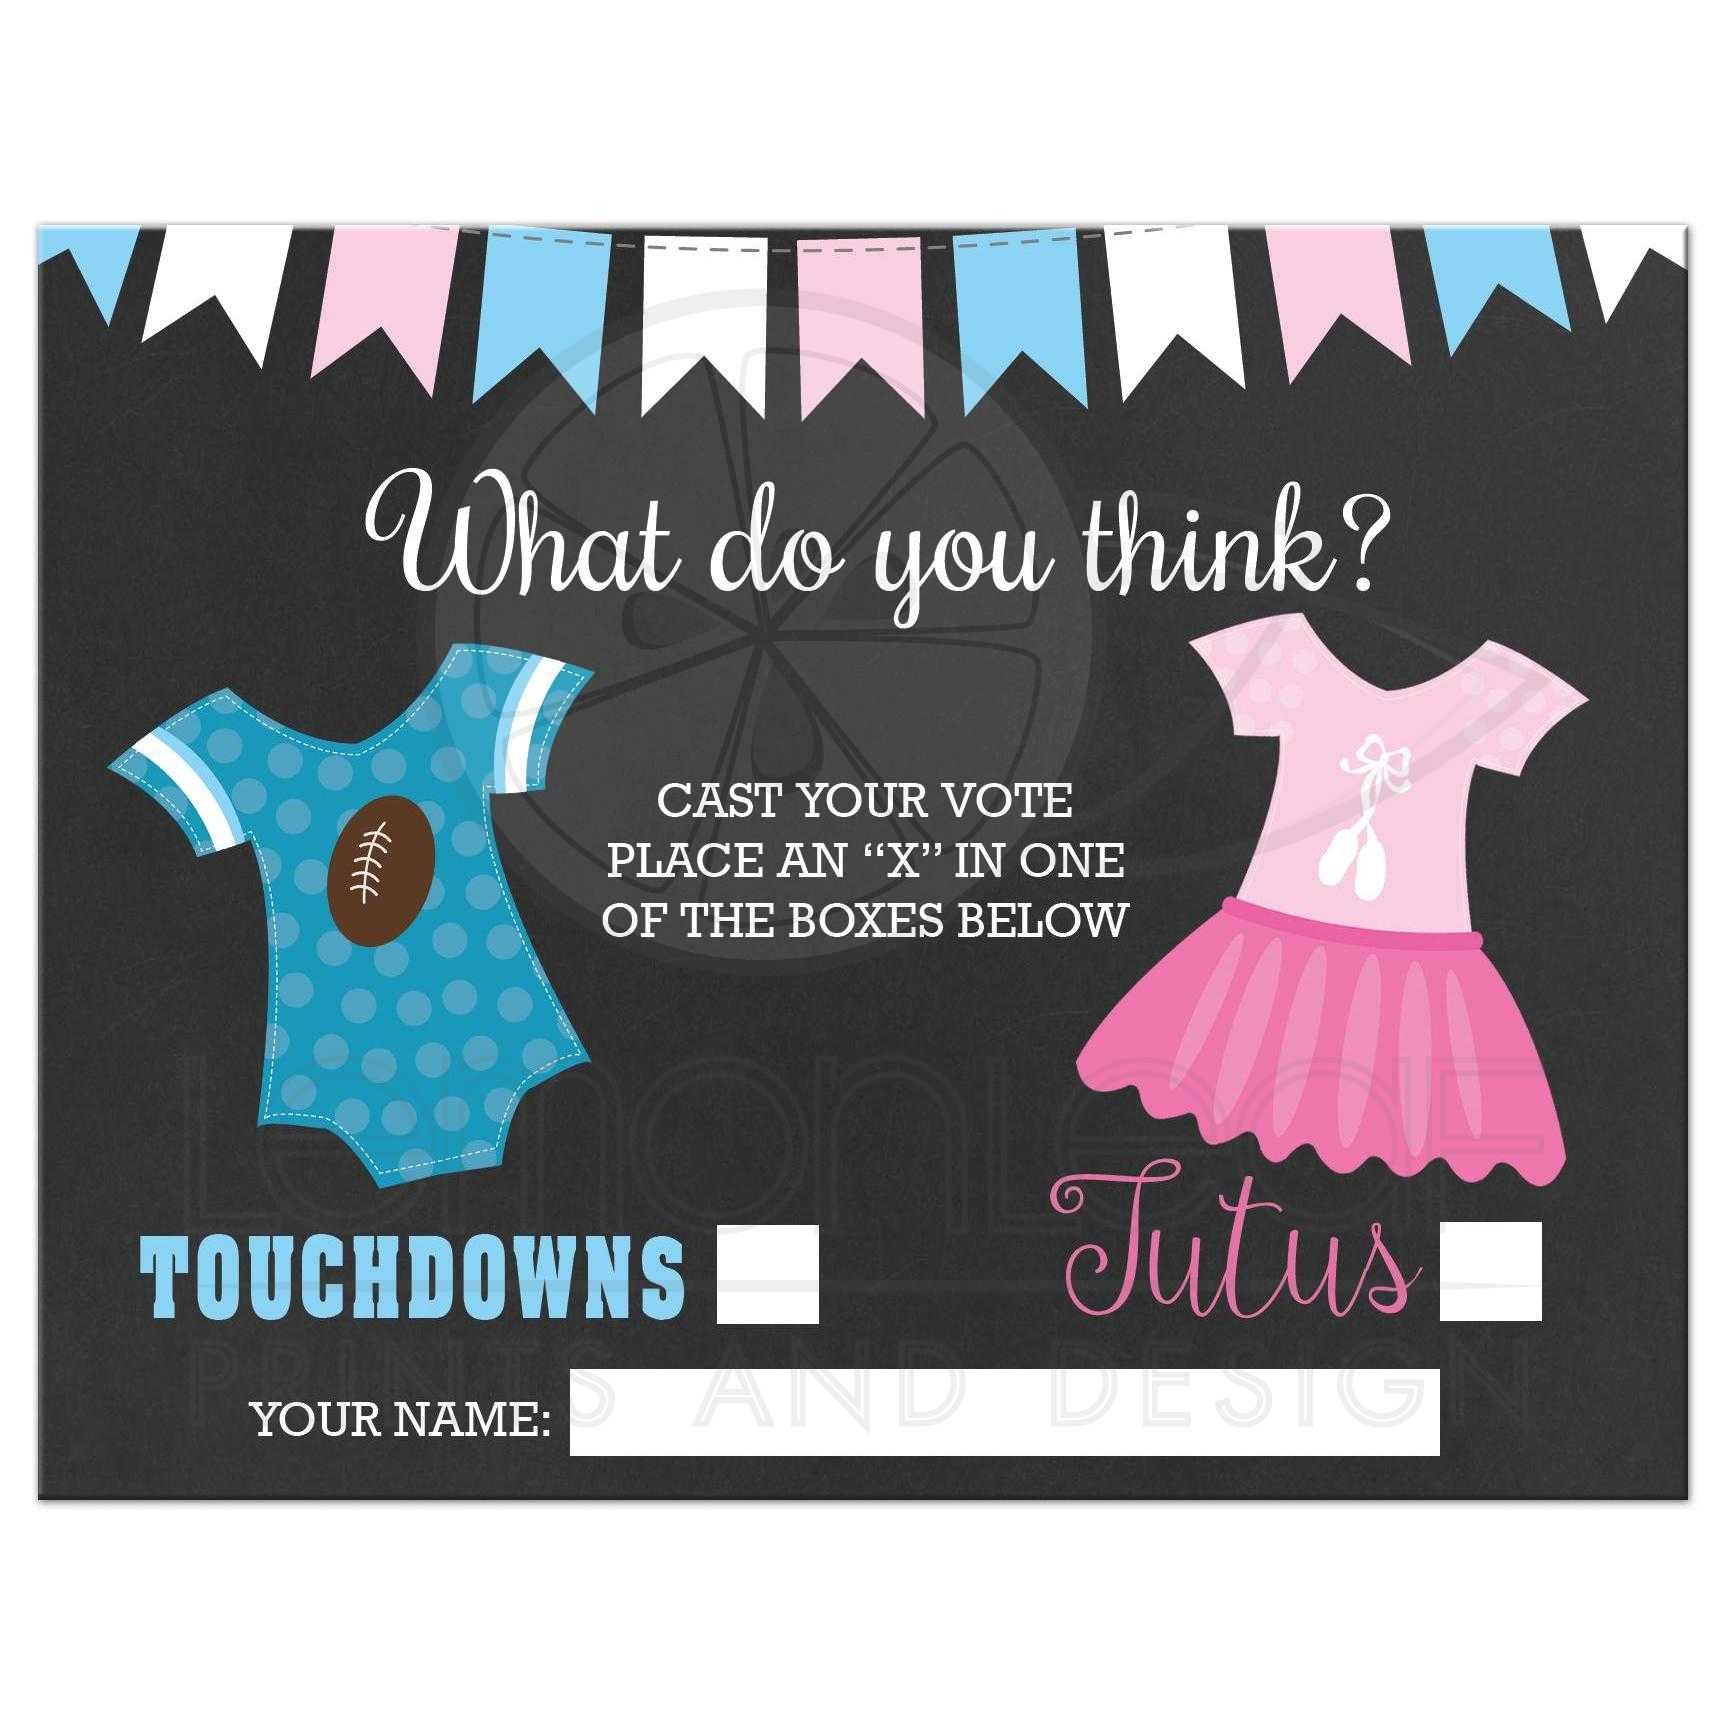 Touchdowns or Tutus Gender Reveal Baby Shower Voting Ballot – Baby Gender Announcement Cards